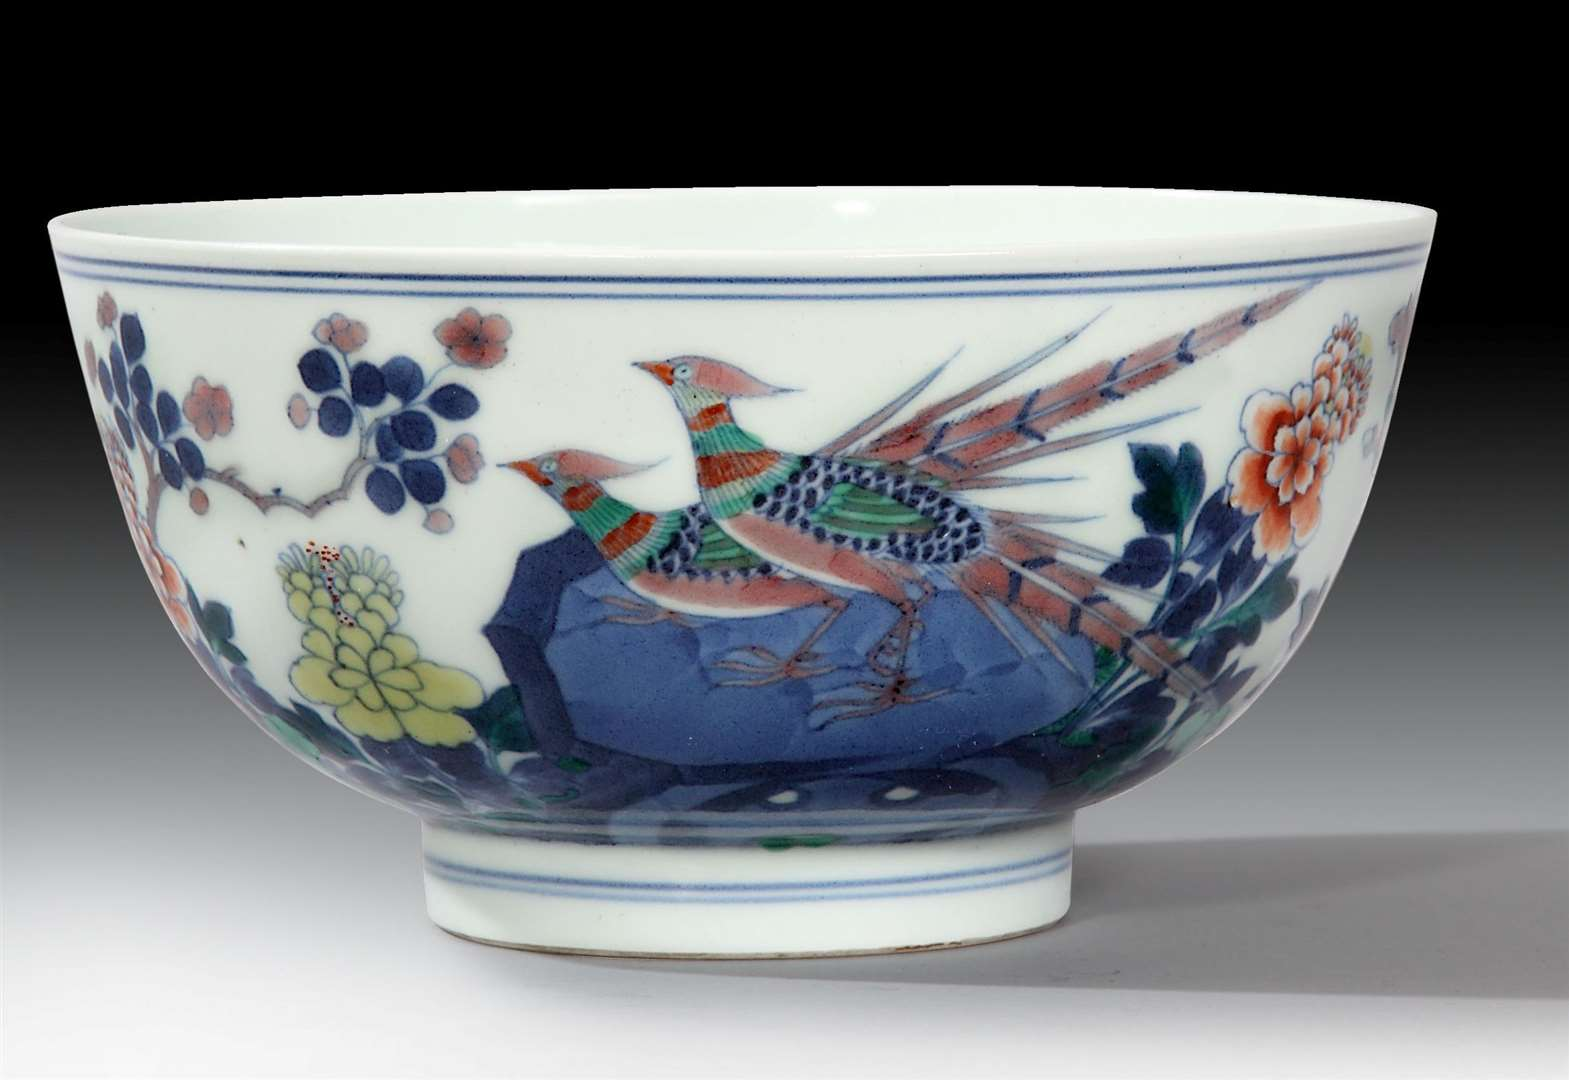 This Chinese Imperial porcelain bowl sold for £195,000